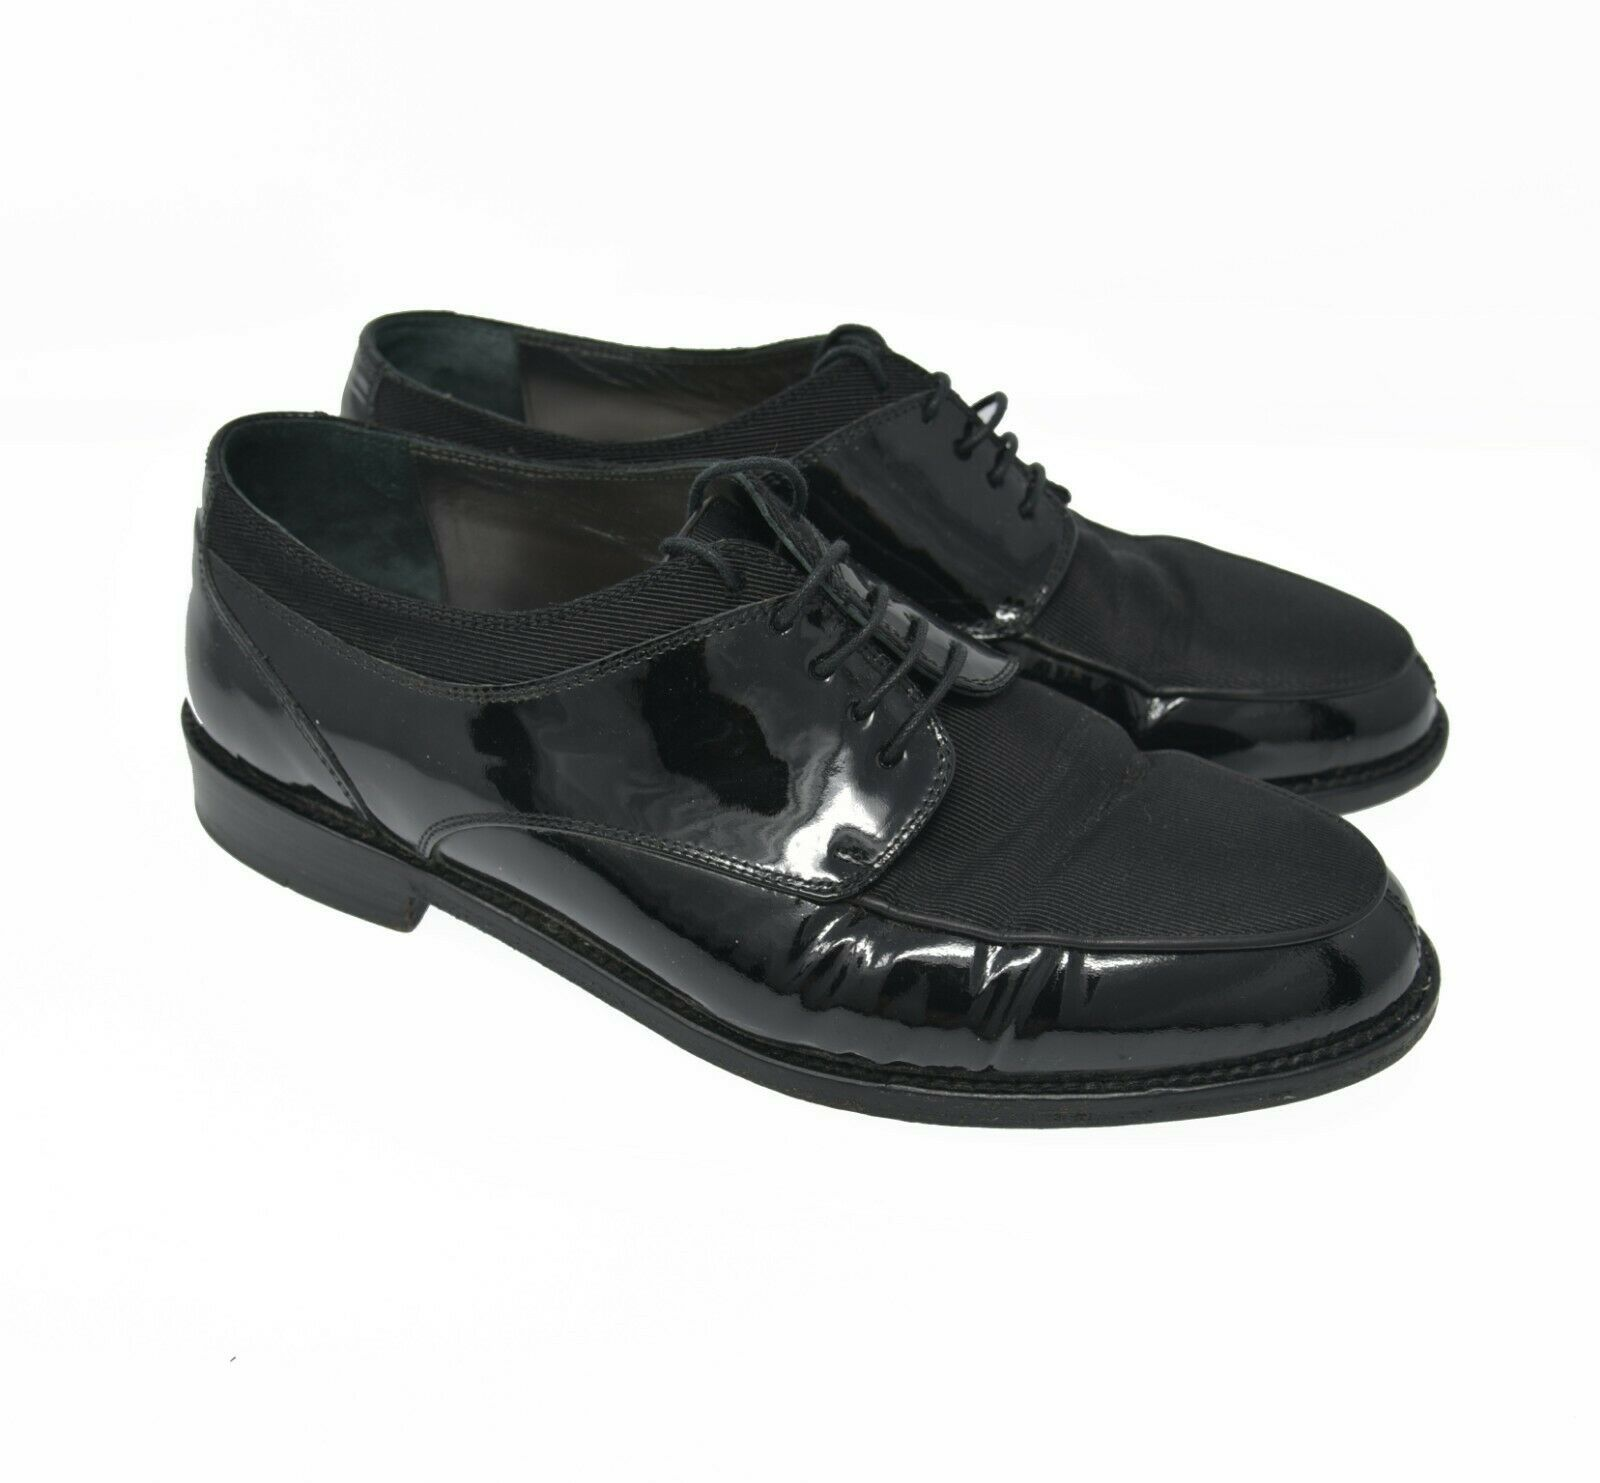 Primary image for Cole Haan Evening Women's Sz 7.5D Black Leather Fabric Lace Up Oxford Dress Shoe